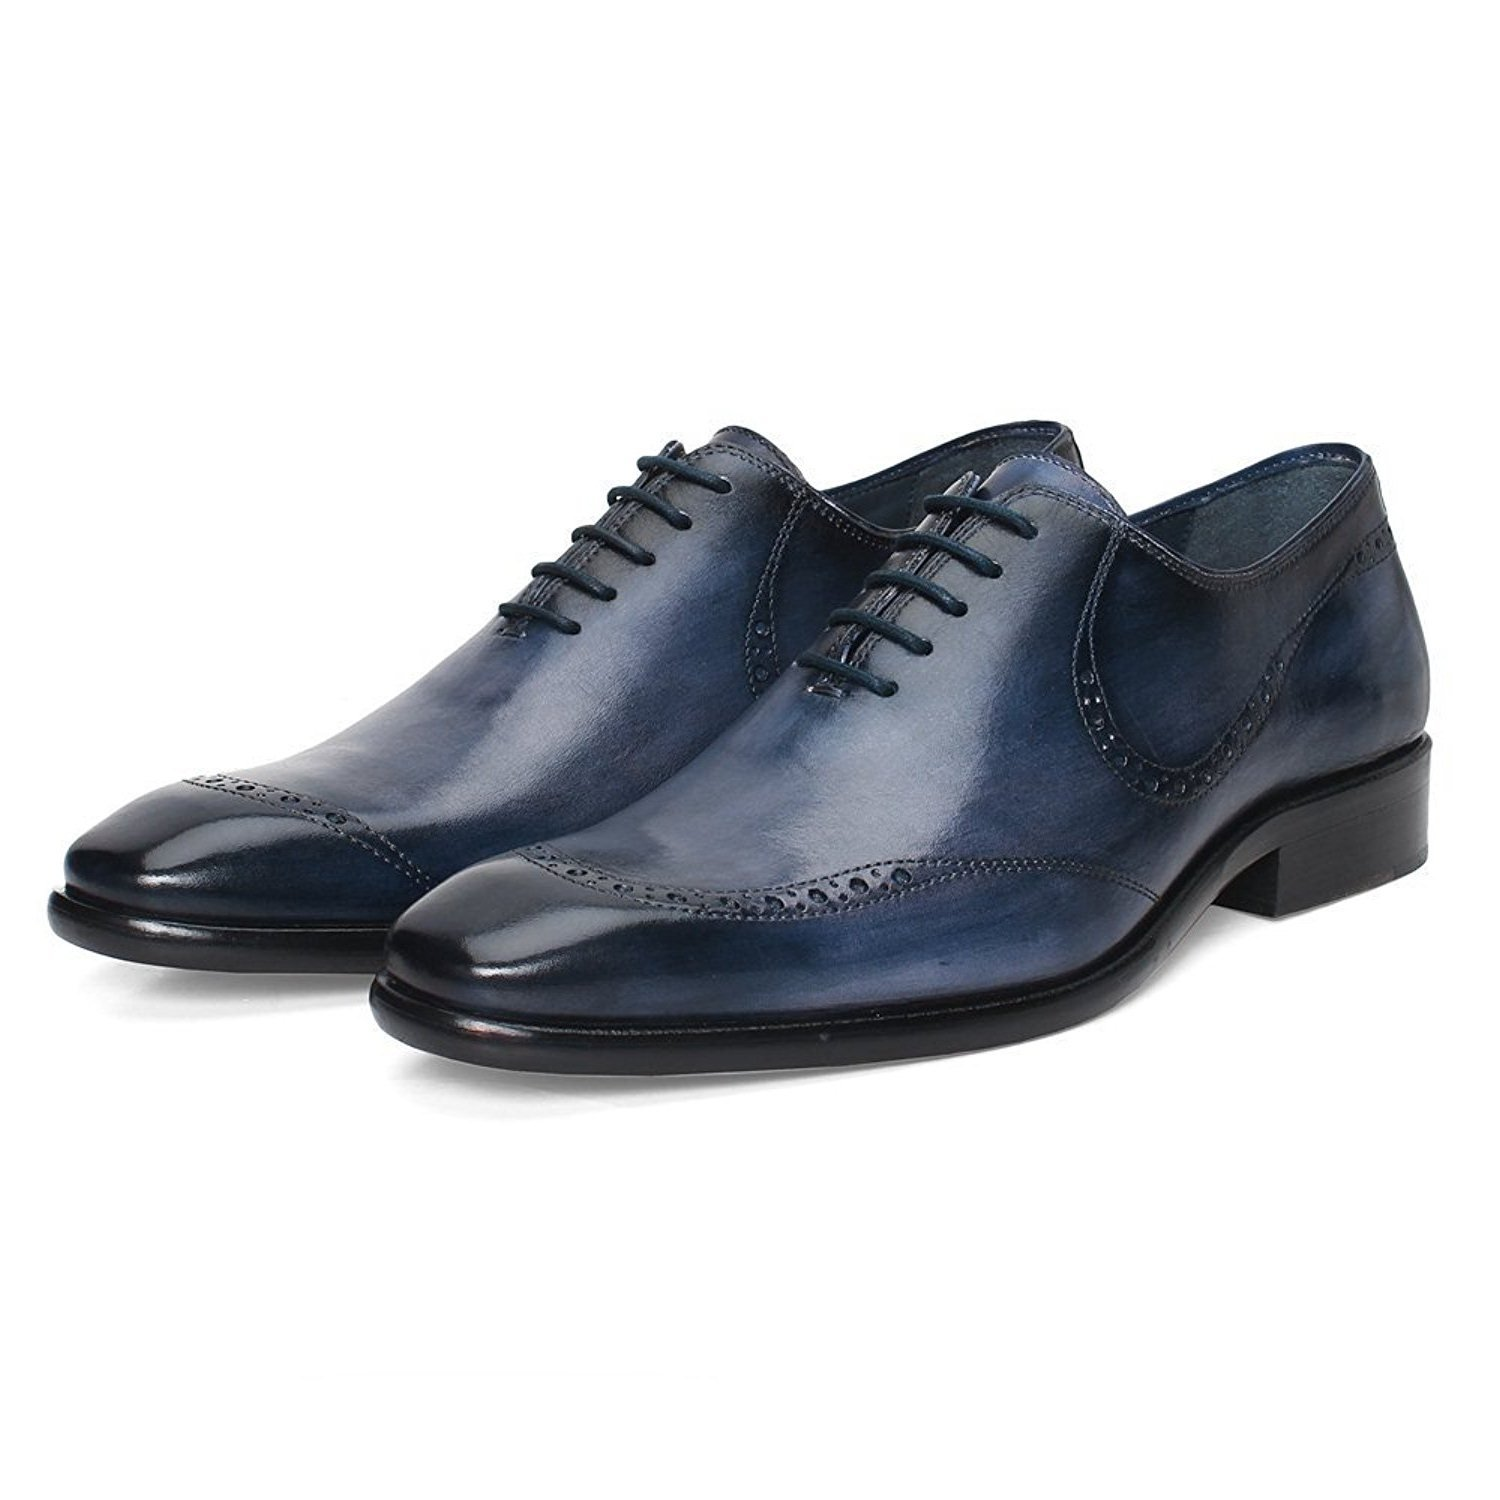 70135c33ce Brune Blue Genuine Leather Formal Shoes for Men/Best Oxford Leather  Shoe/Hand Made Leather Shoes/Hand Painted Leather Shoe/Extra Comfortable  Leather ...